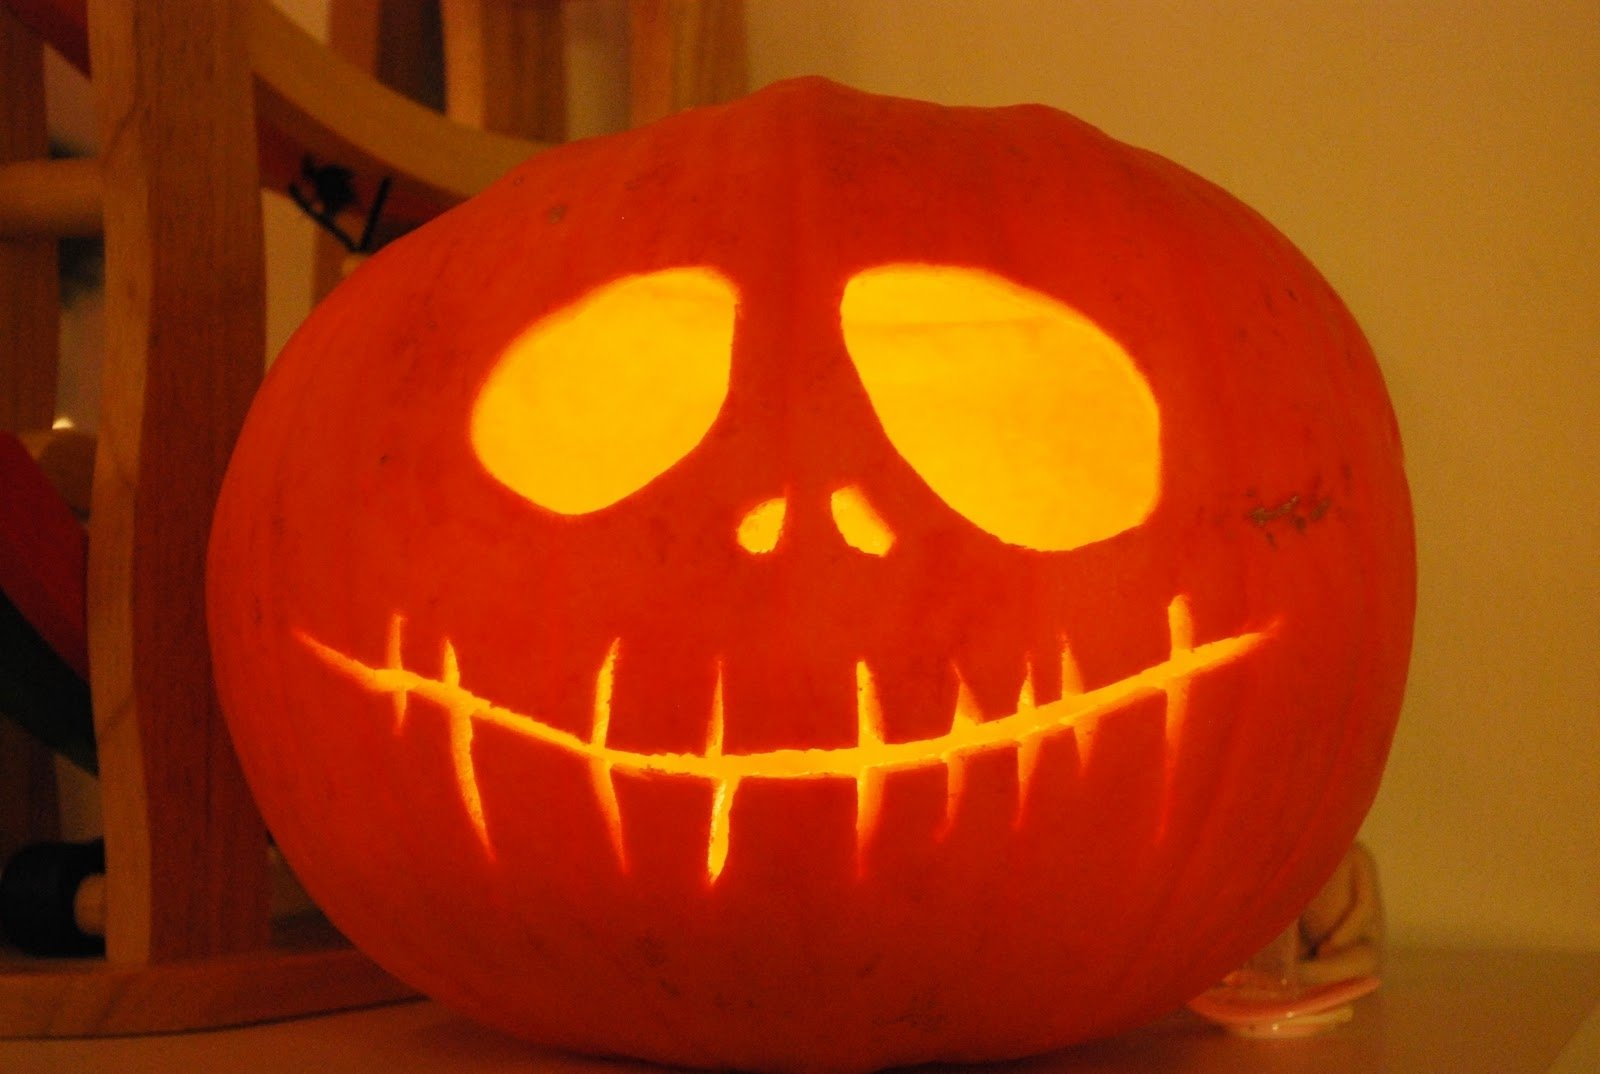 10 Unique Scary Easy Pumpkin Carving Ideas best diy scary pumpkin carving ideas for halloween yard decorations 2017 2021